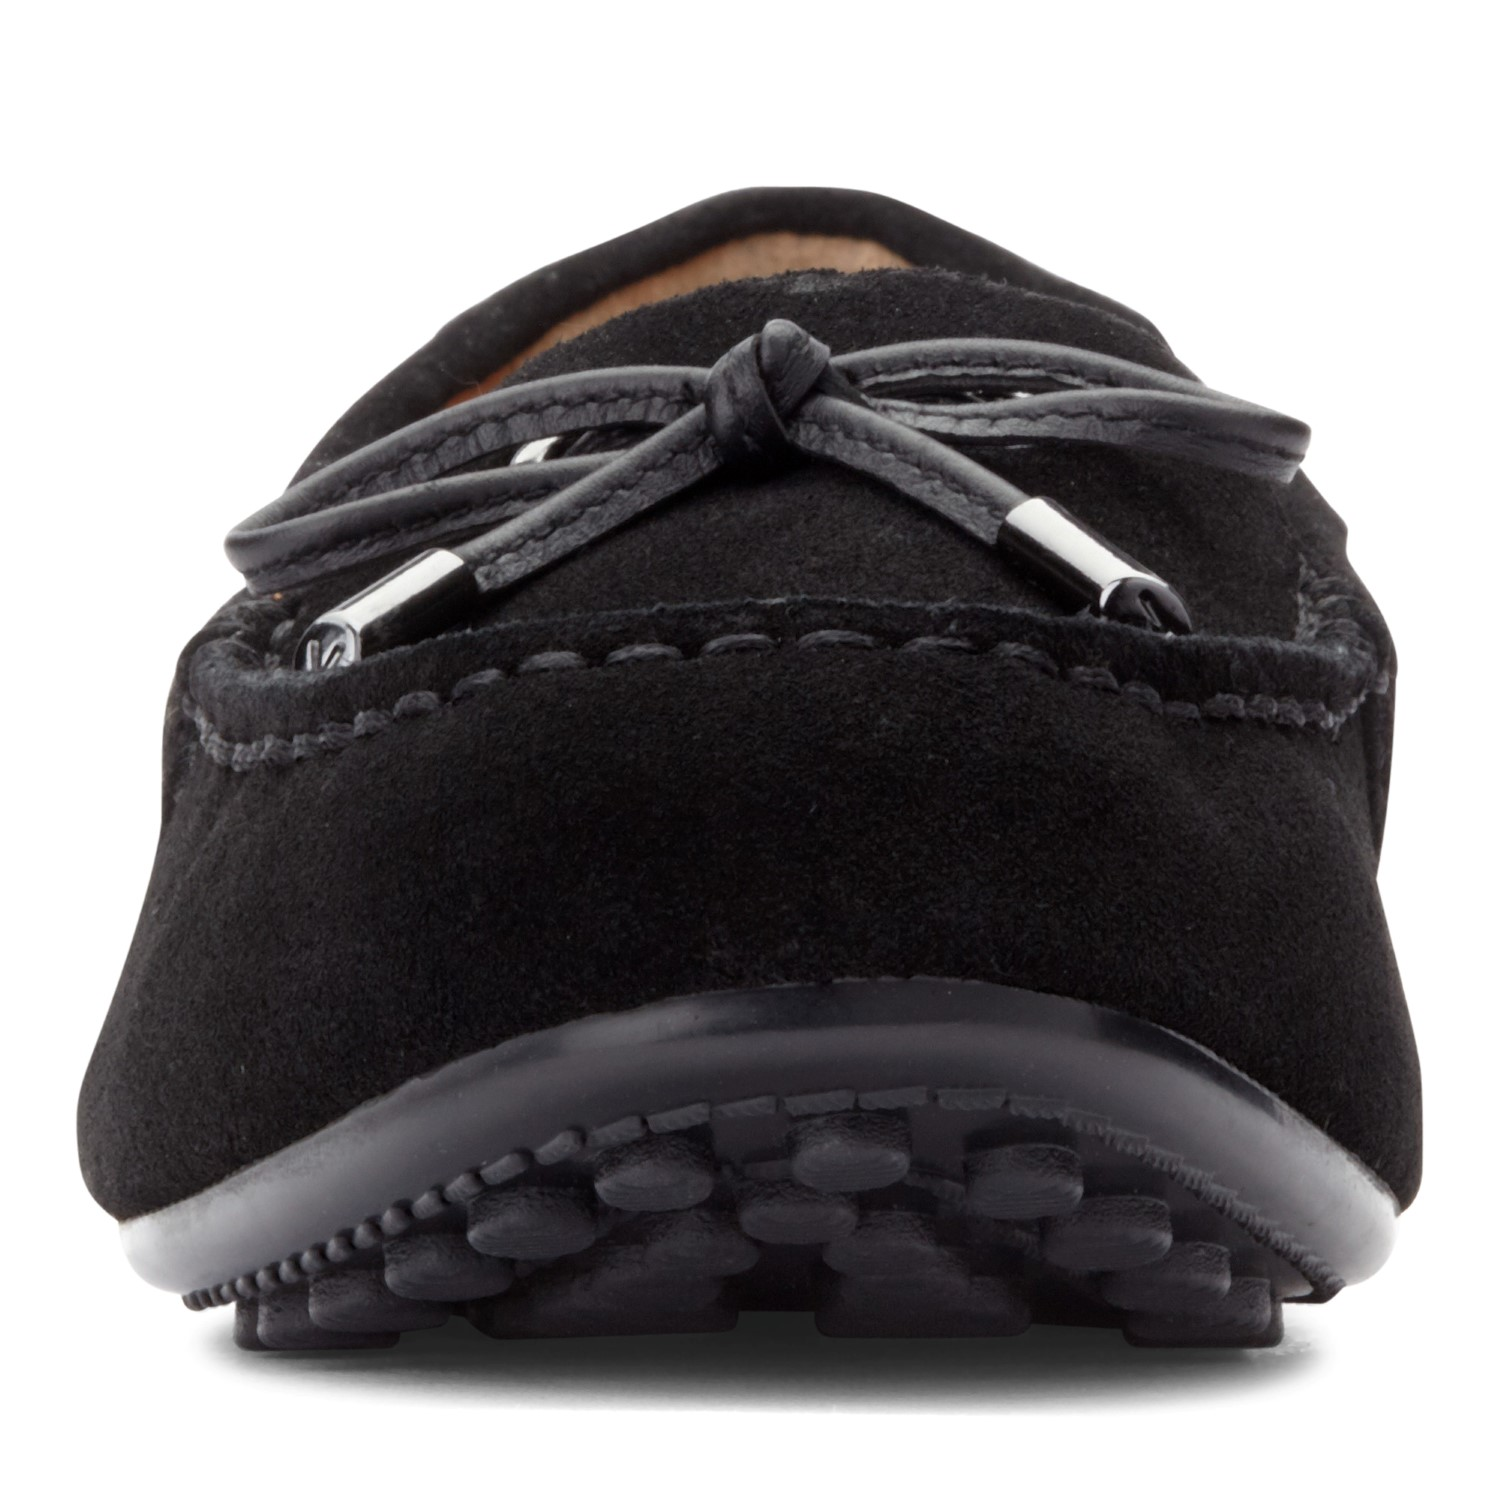 a394259f6ef Vionic Honor Virginia - Women s Supportive Boat Shoe - Black - 6 front view